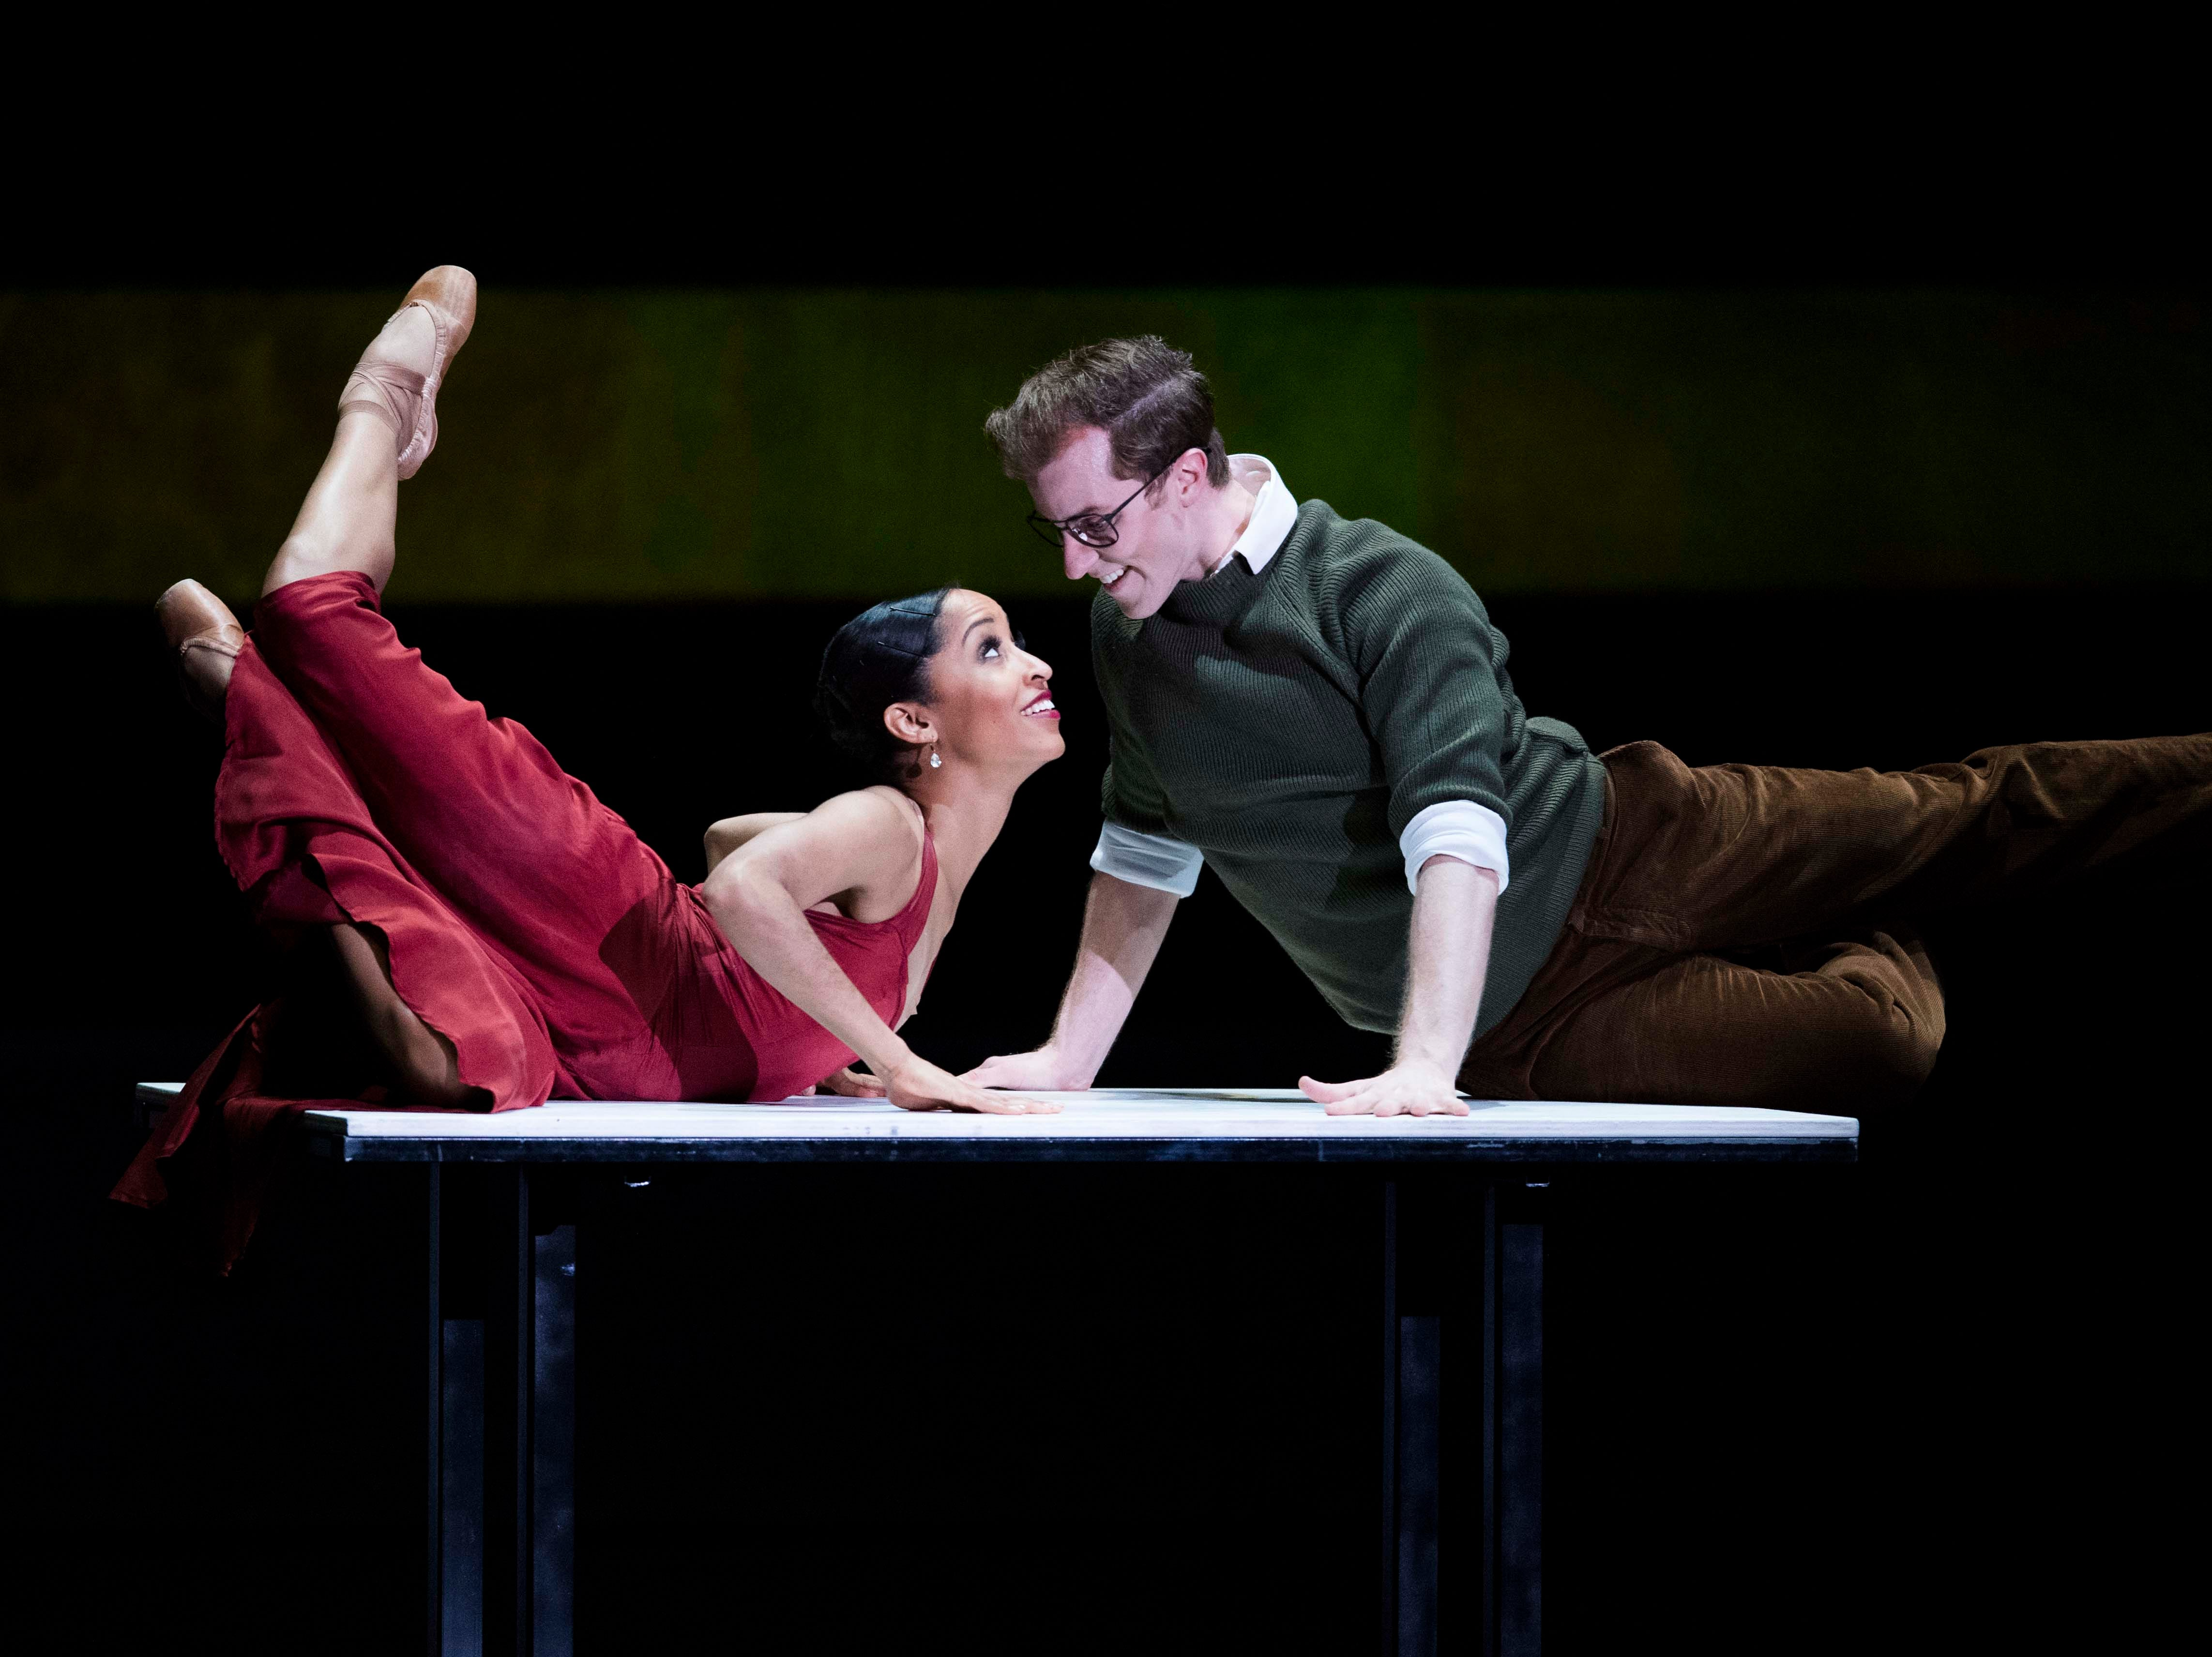 The Nashville Ballet performs Lucy Negro Redux in the Tennessee Theatre, with music by Rhiannon Giddens and Francesco Turrisi, and poetry by Caroline Randall Williams, in Knoxville Thursday, March 21, 2019.